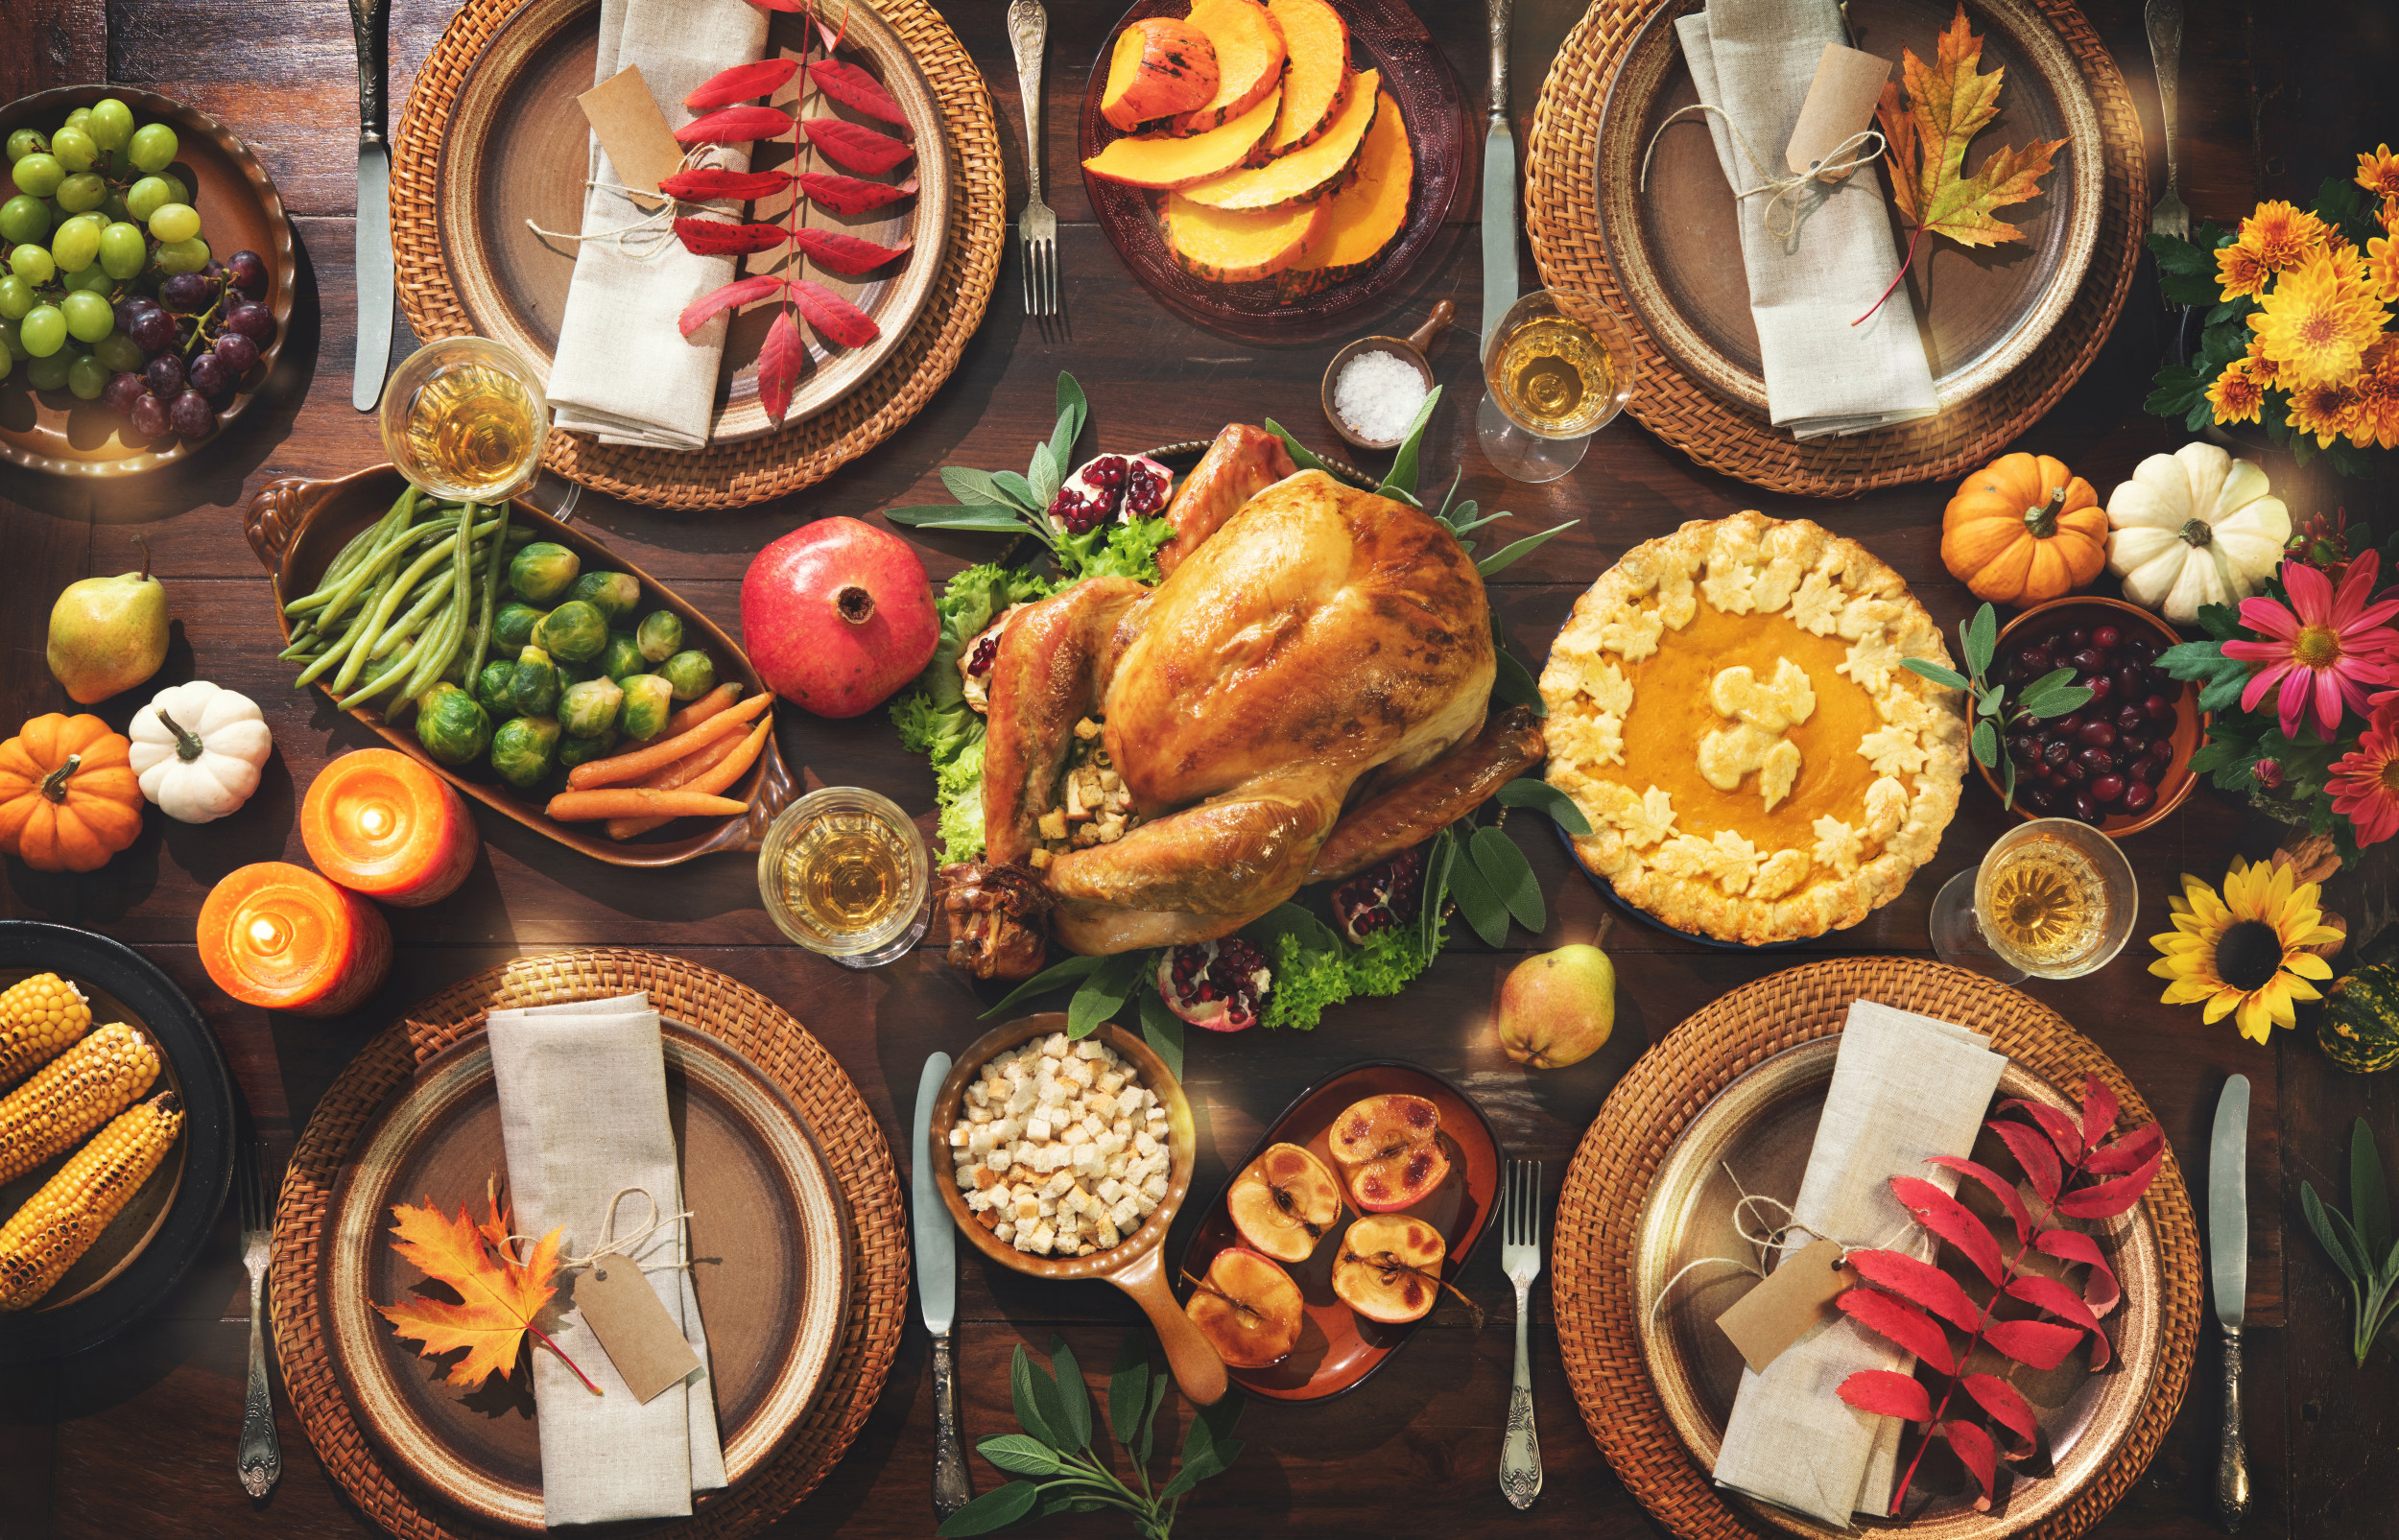 How to use weed in your Thanksgiving meal this year